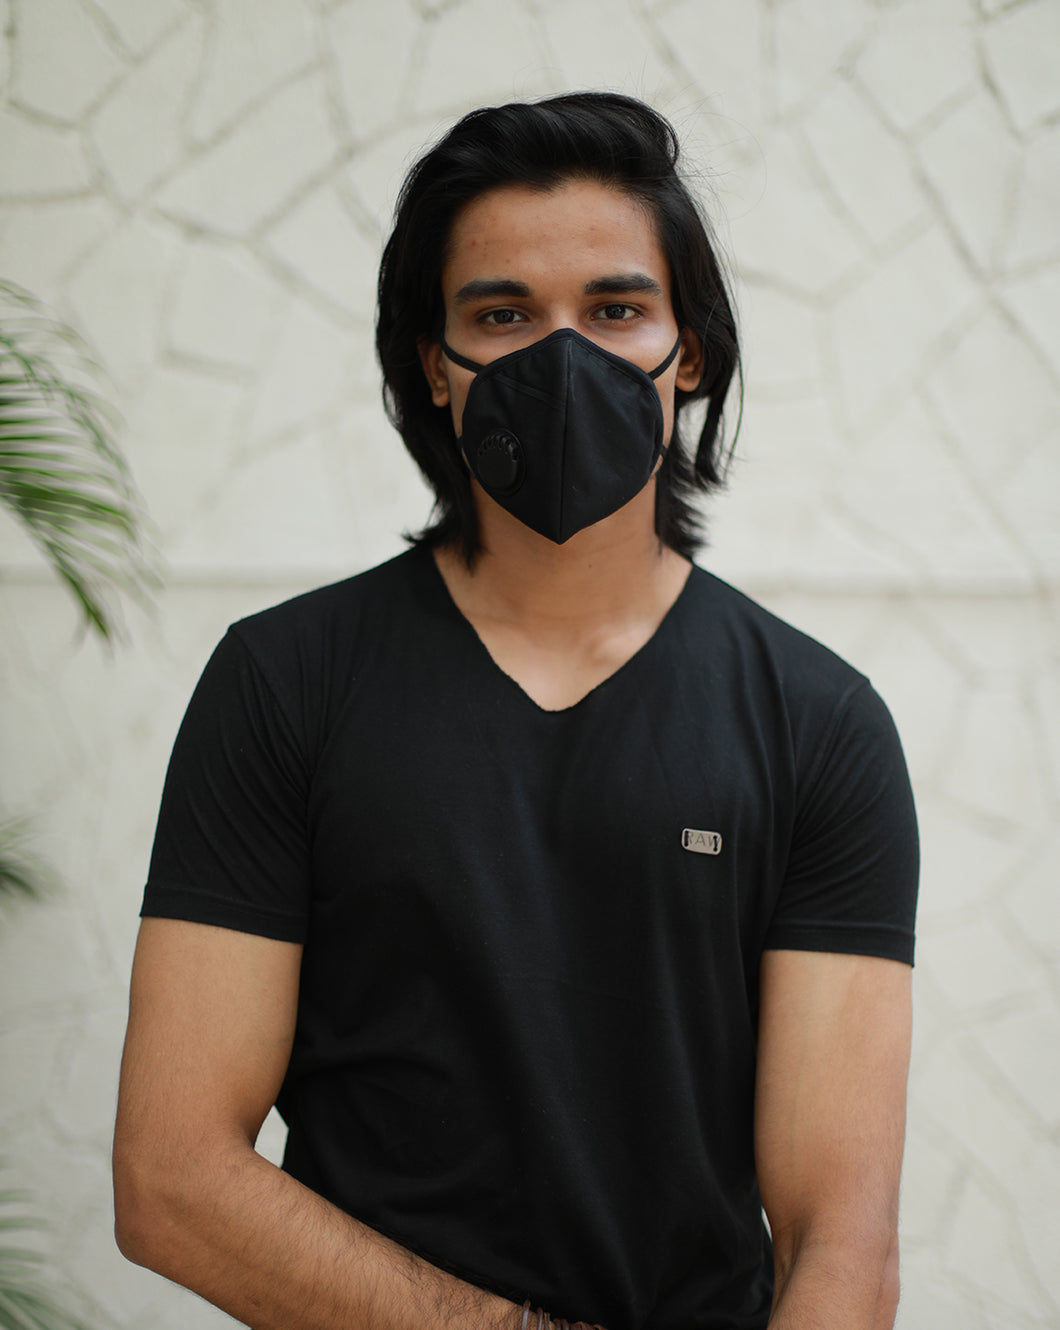 The Jet Black Mask